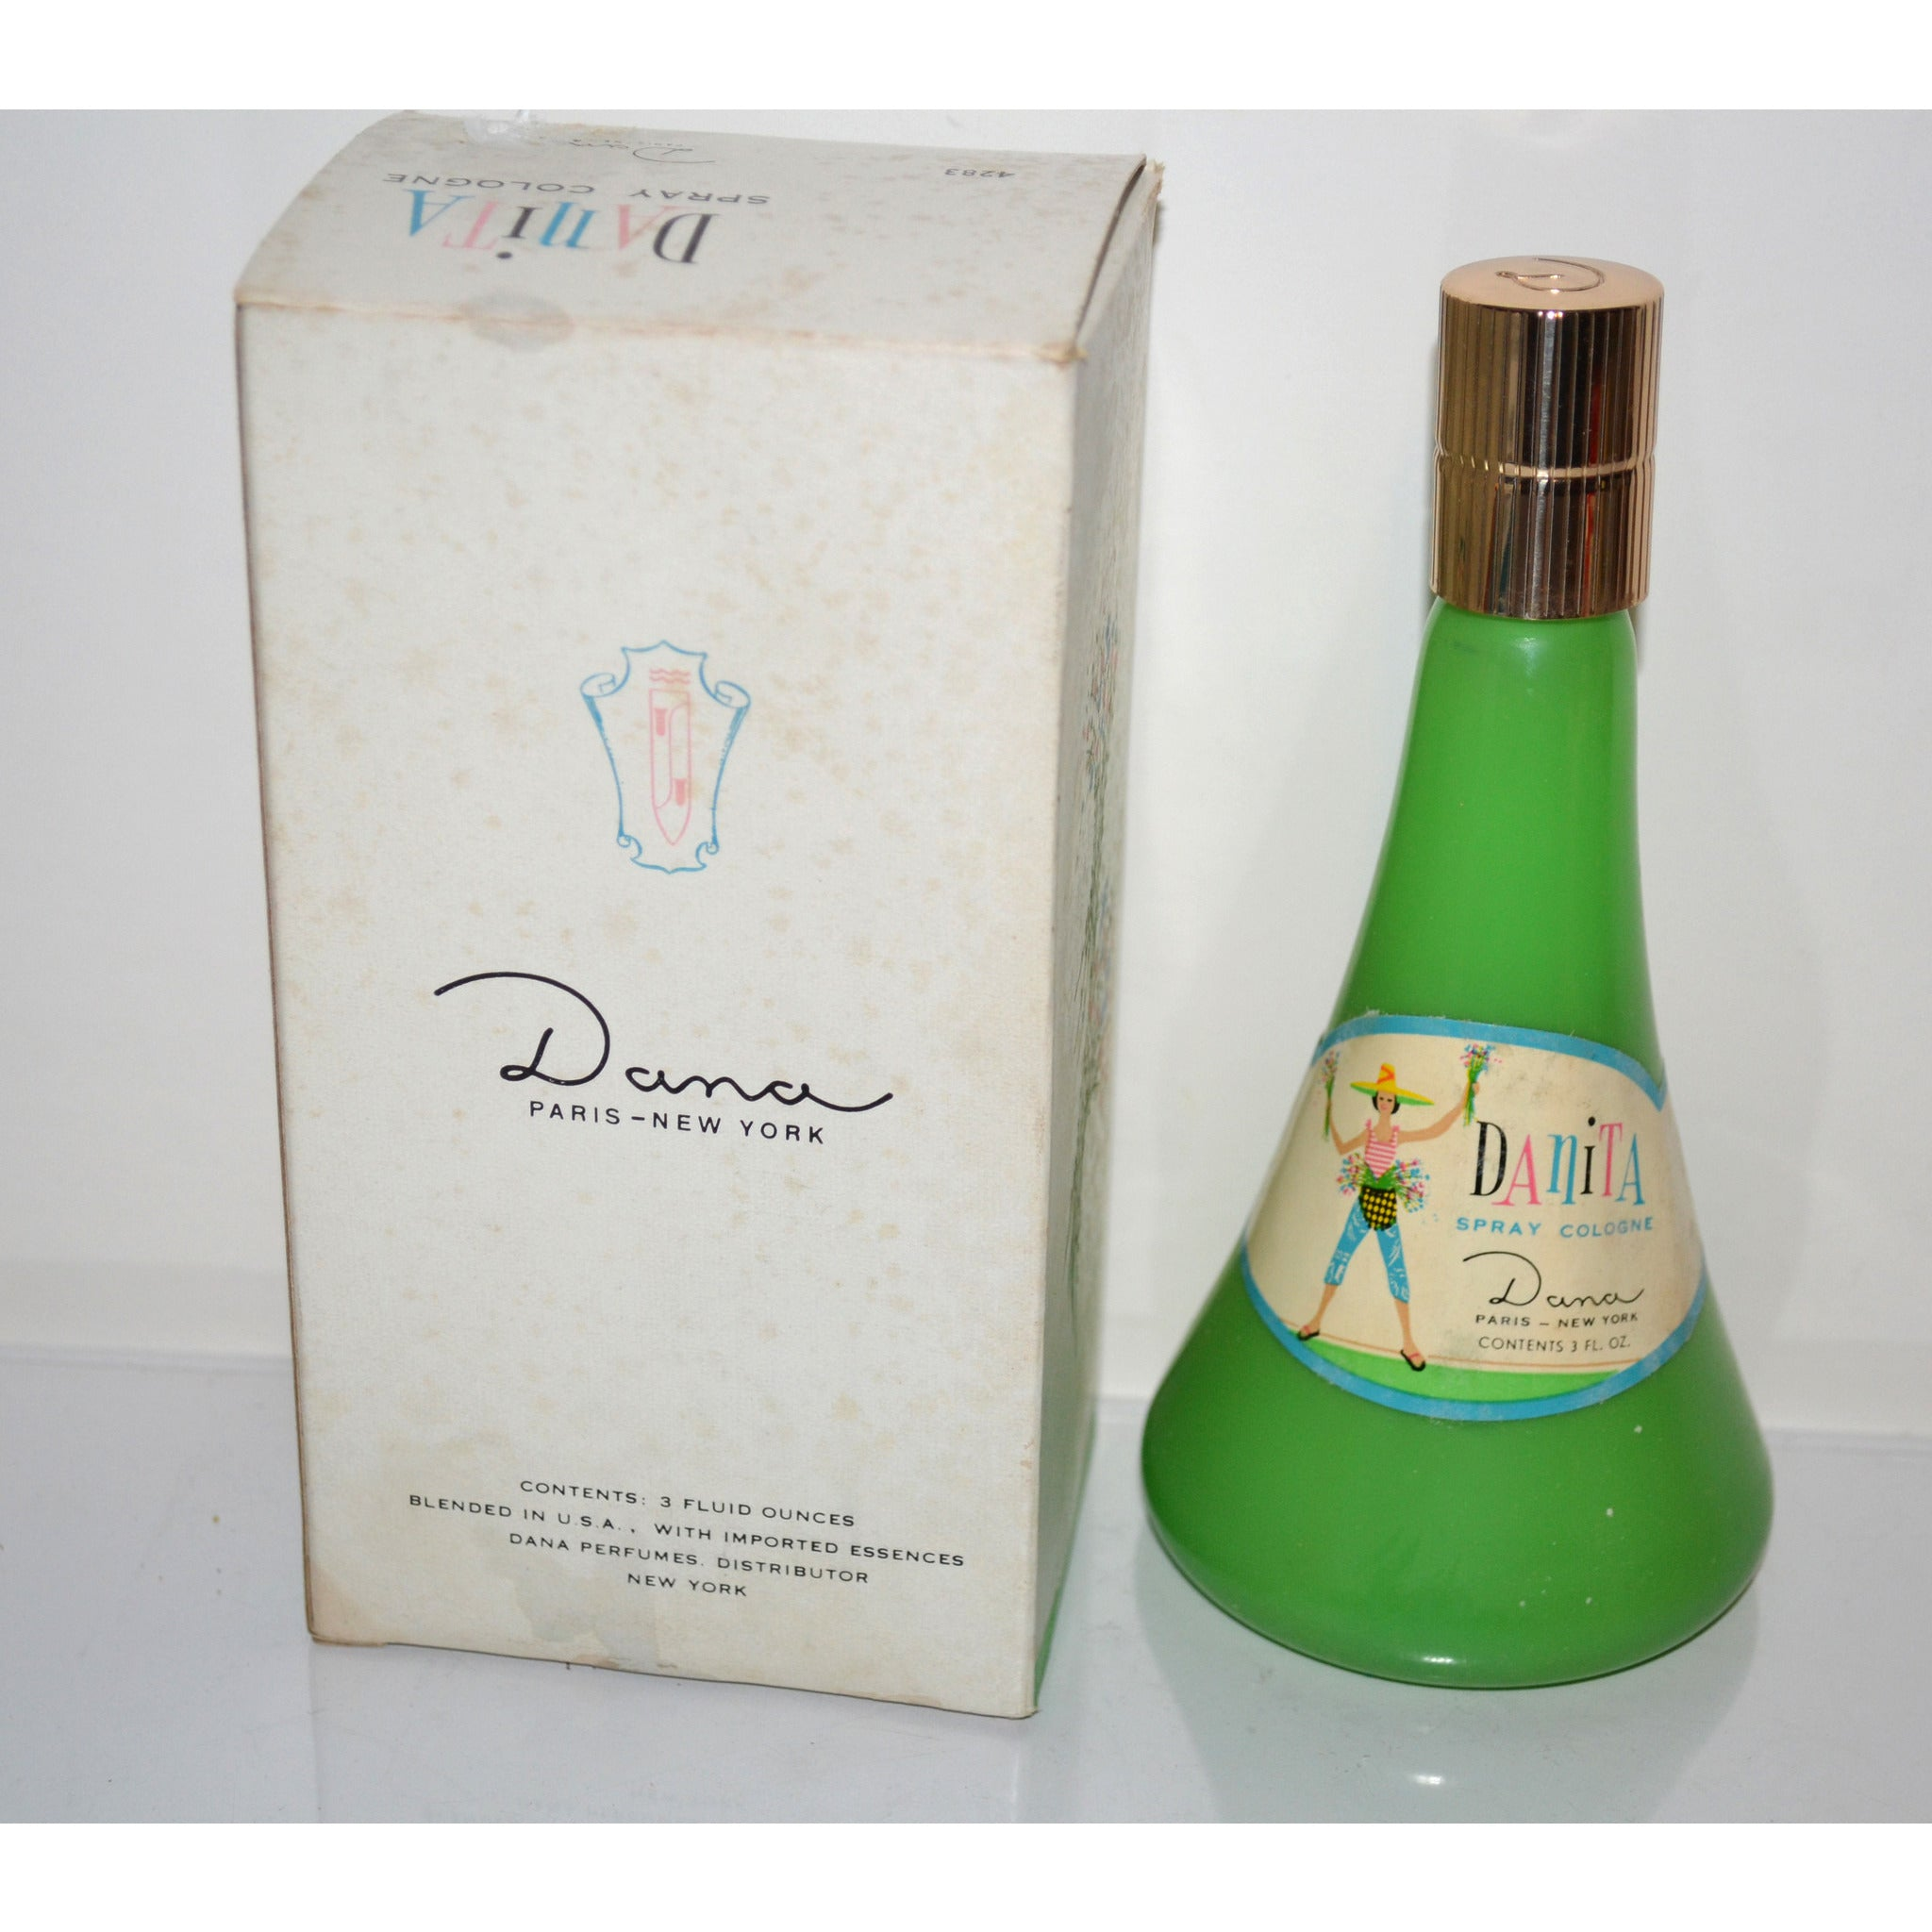 Vintage Danita Cologne By Dana